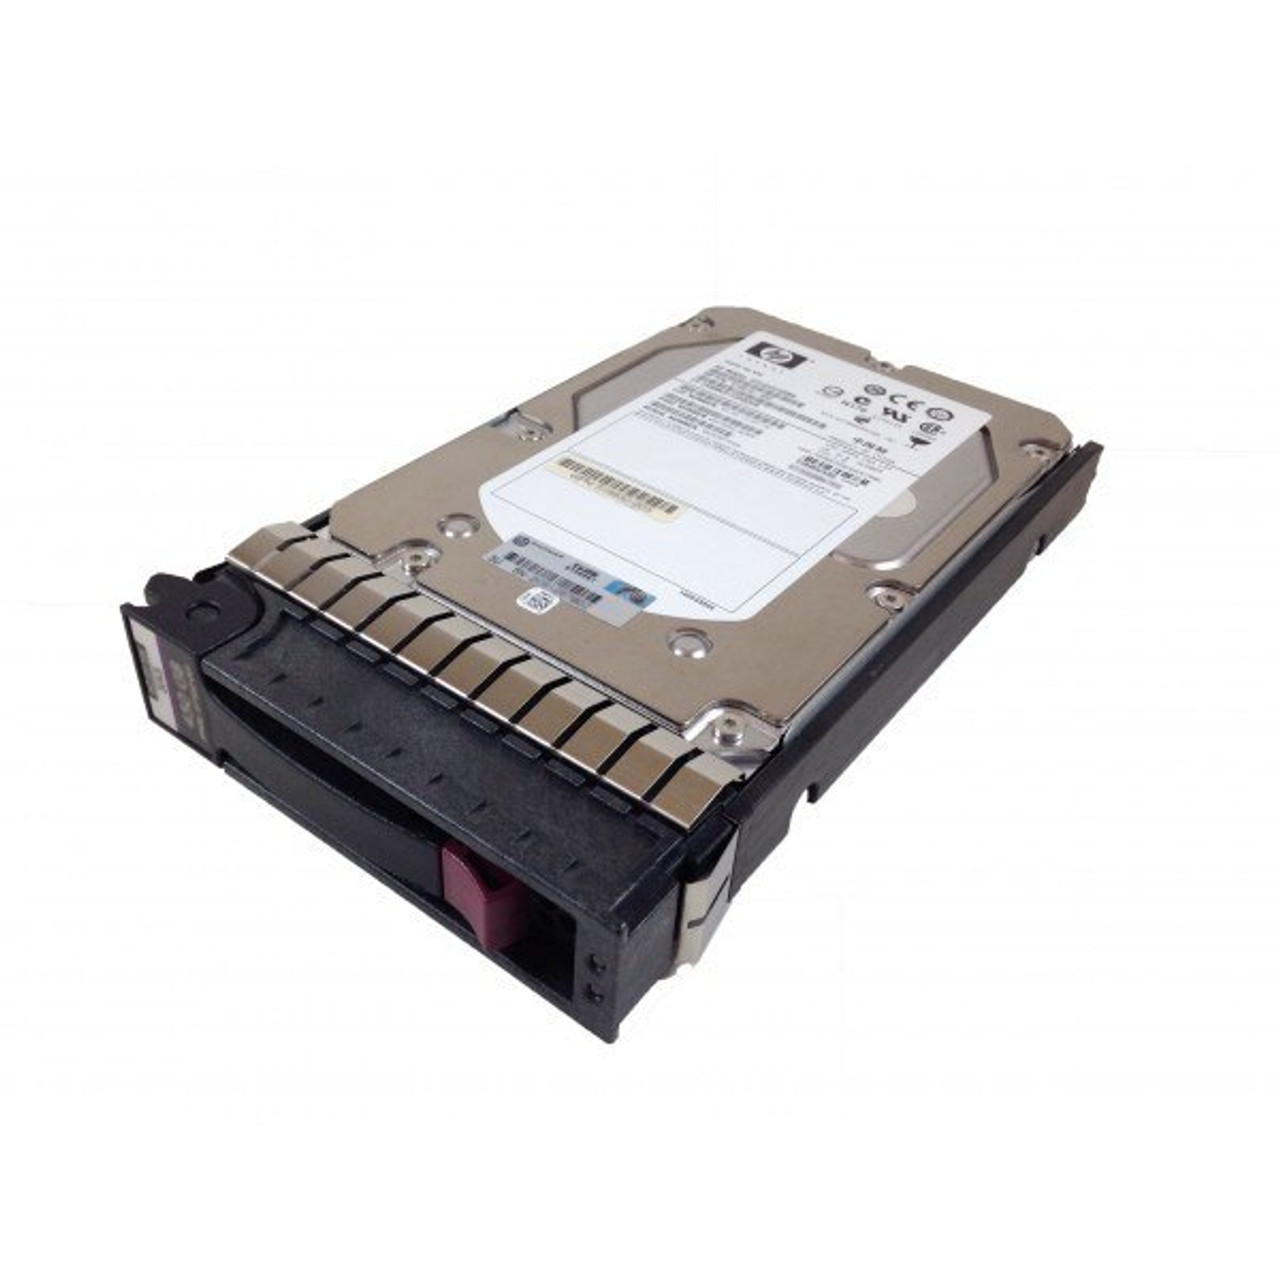 HP 364622-B21 300 GB 1 Internal SAN Hard Drive 364622-B21 Certified Refurbished